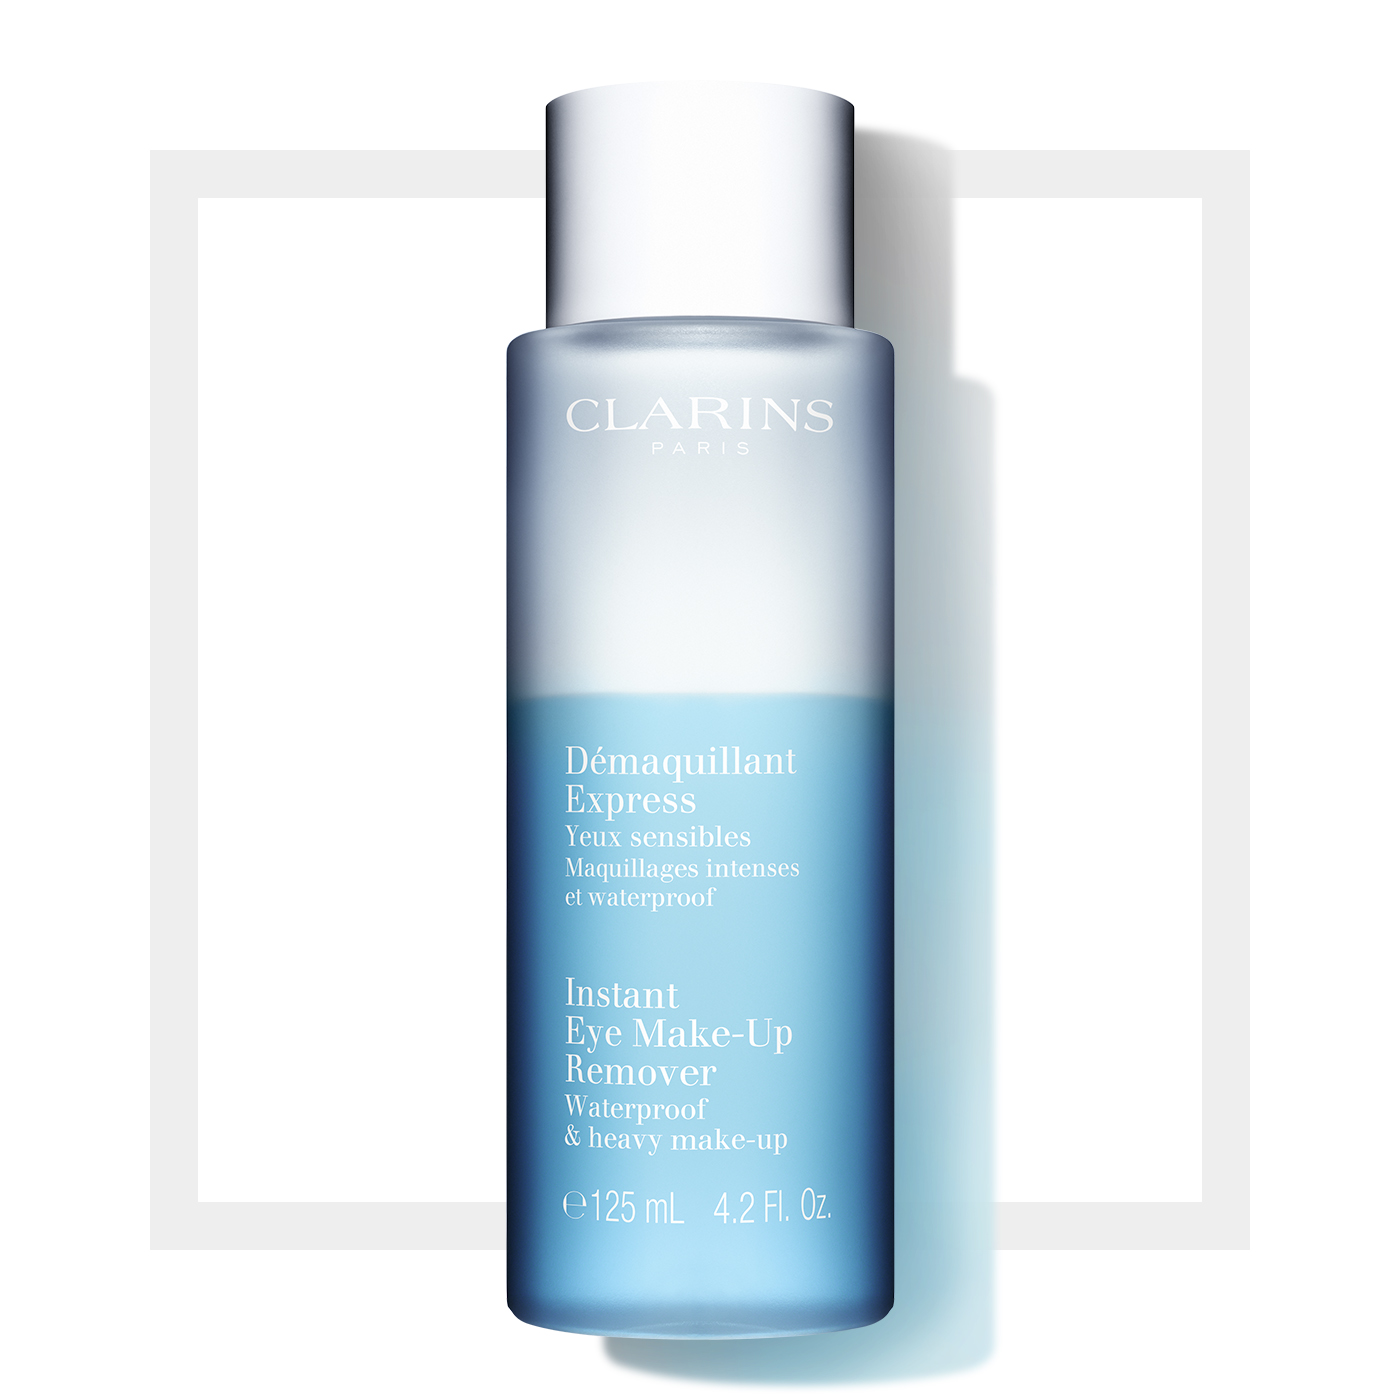 8e703b48bd6 Instant Eye Make-Up Remover -Best Eye Make-Up Remover - Clarins ...